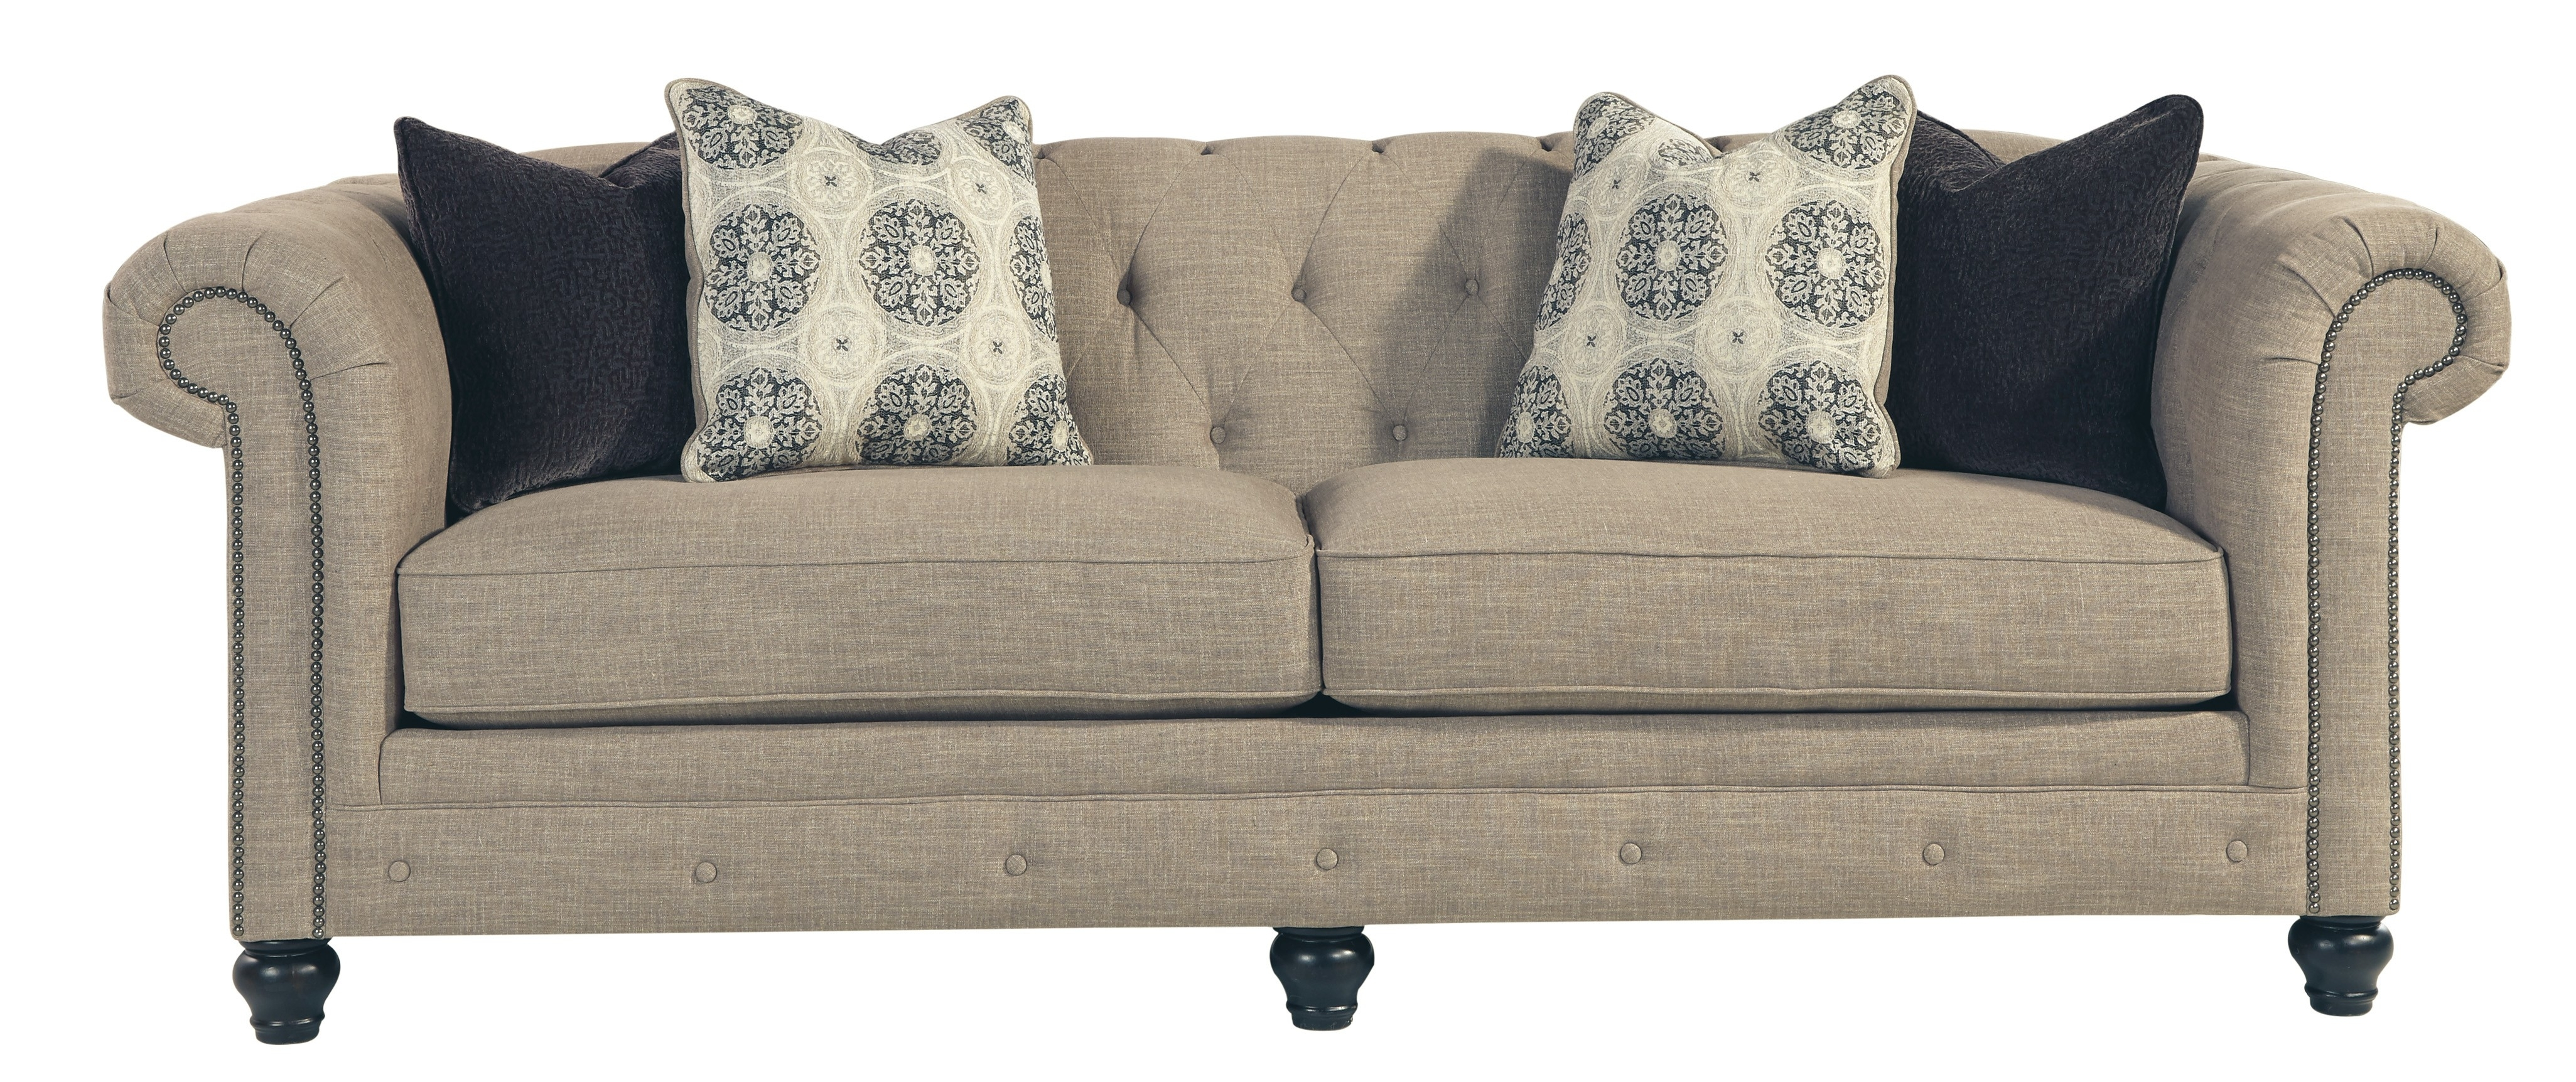 Ashley 9940238 Azlyn Tufted Back Sofa With Sepia Tone Fabric Uphostery Intended For Ashley Tufted Sofas (Image 2 of 10)